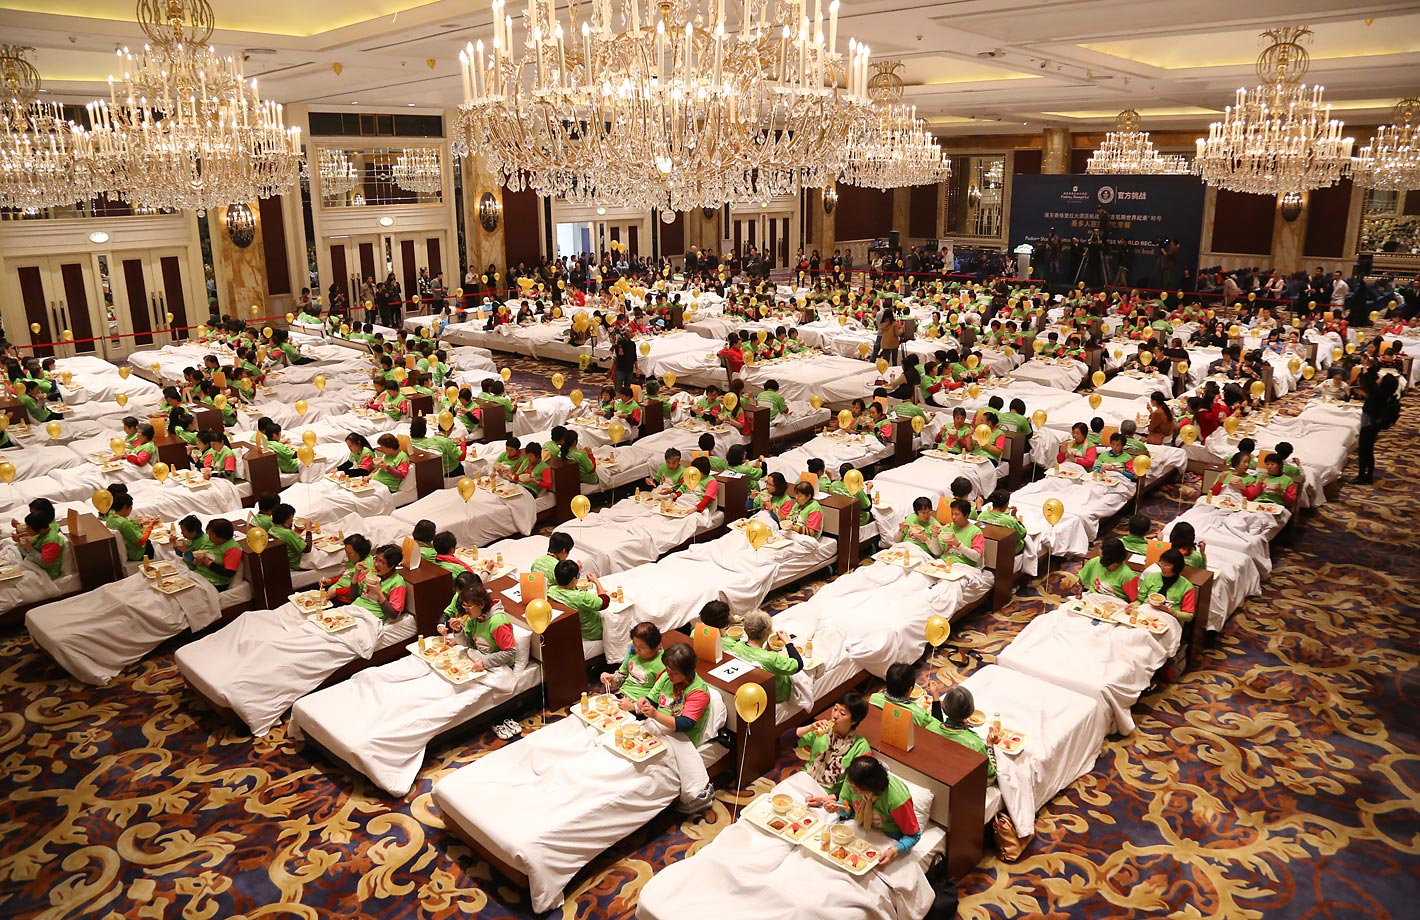 The most people eating breakfast in bed is 388 and was achieved by Pudong Shangri-La in Shanghai, China, on Nov. 12, 2014.